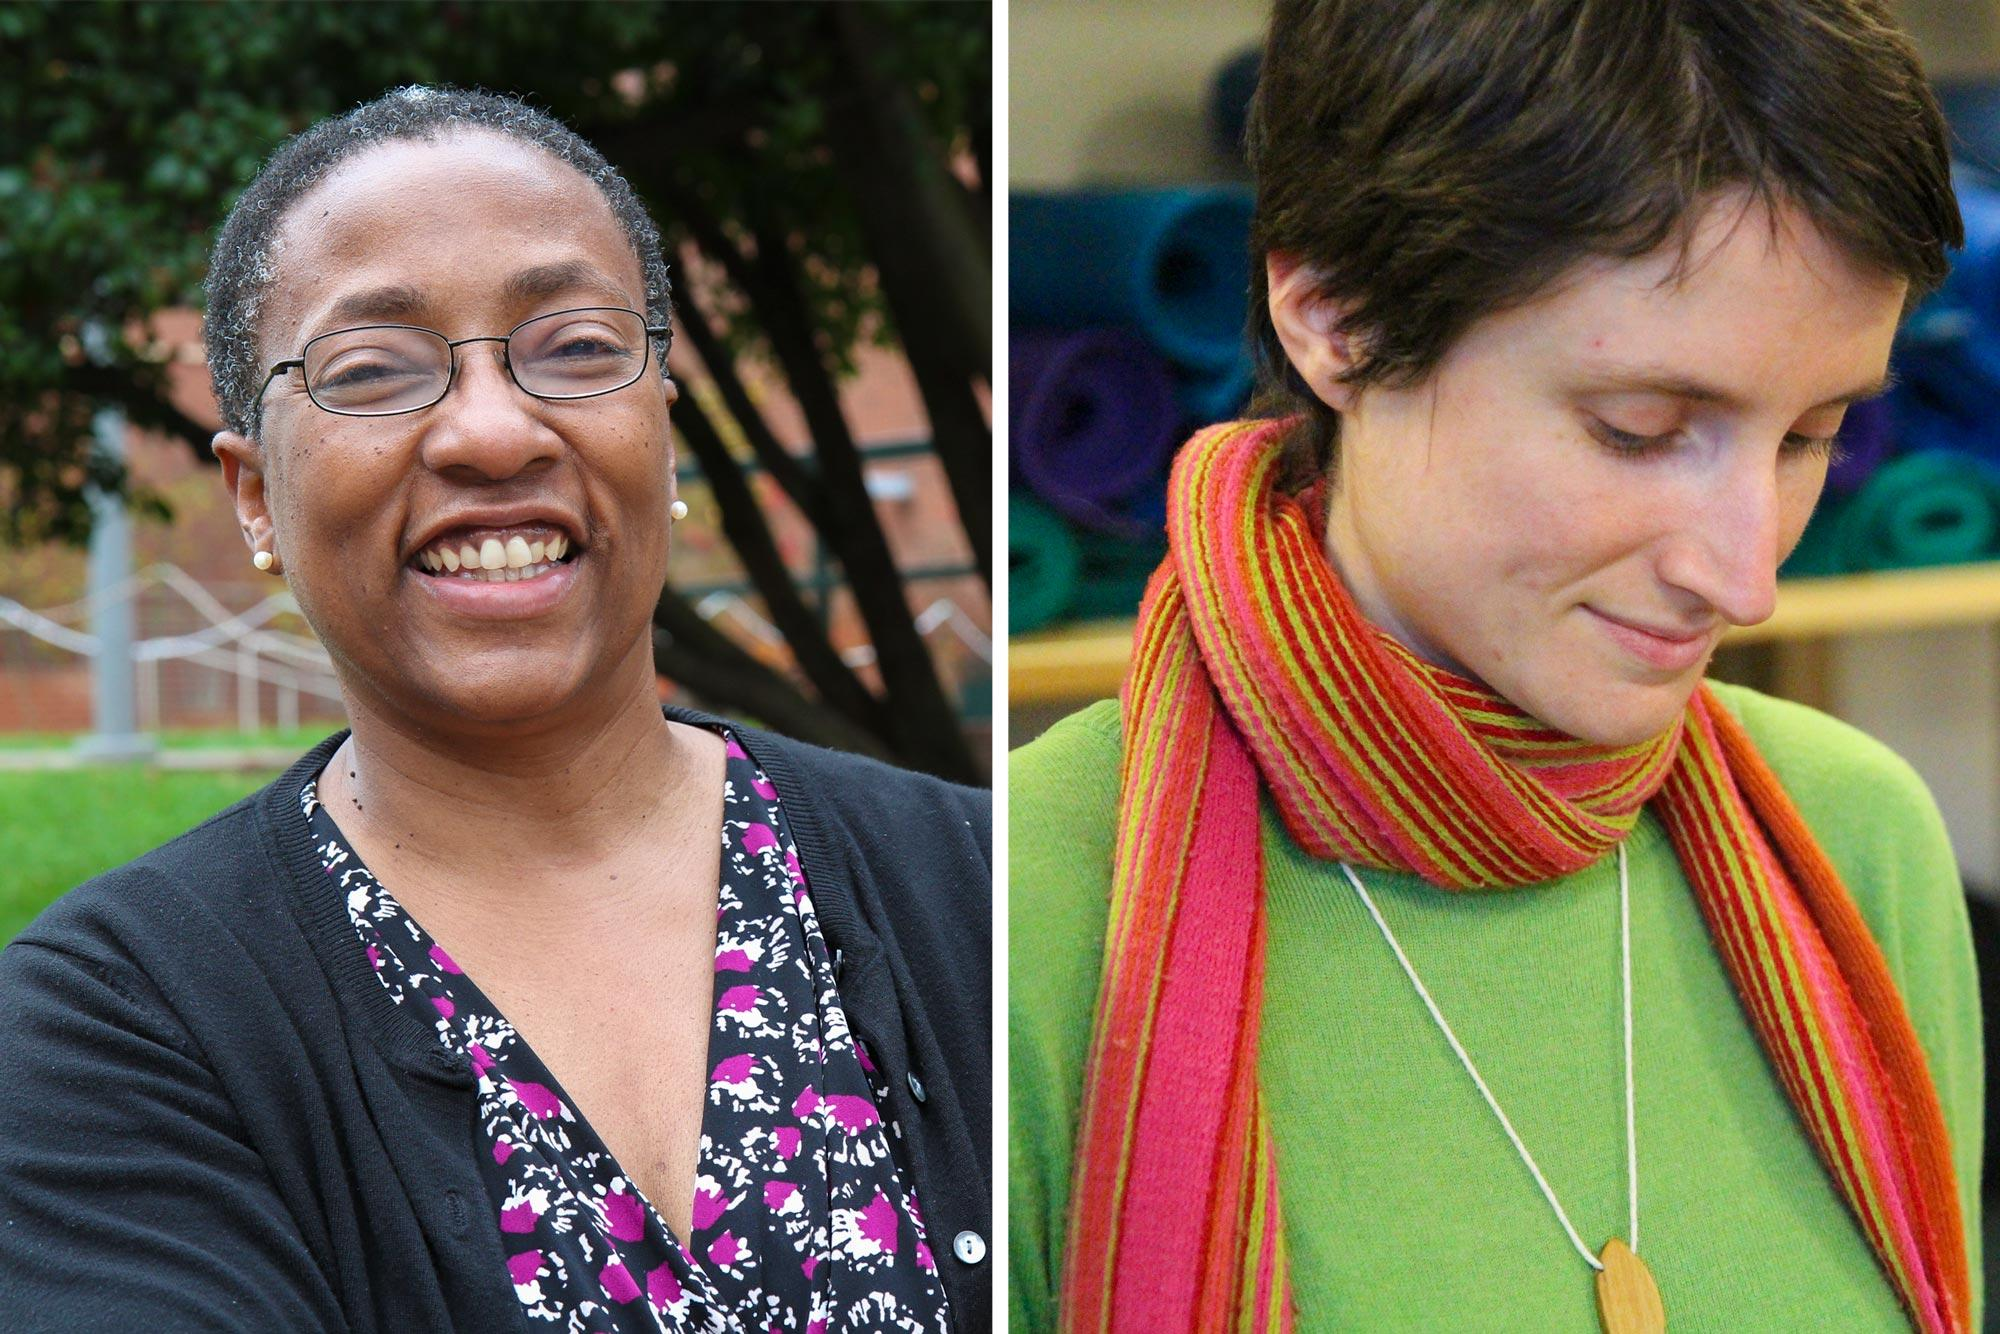 UVA nursing professor Cathy Campbell (left) and Ph.D. student Lauren Catlett recently published a case study that offers a personal glimpse into the life of a transgender woman with cancer.